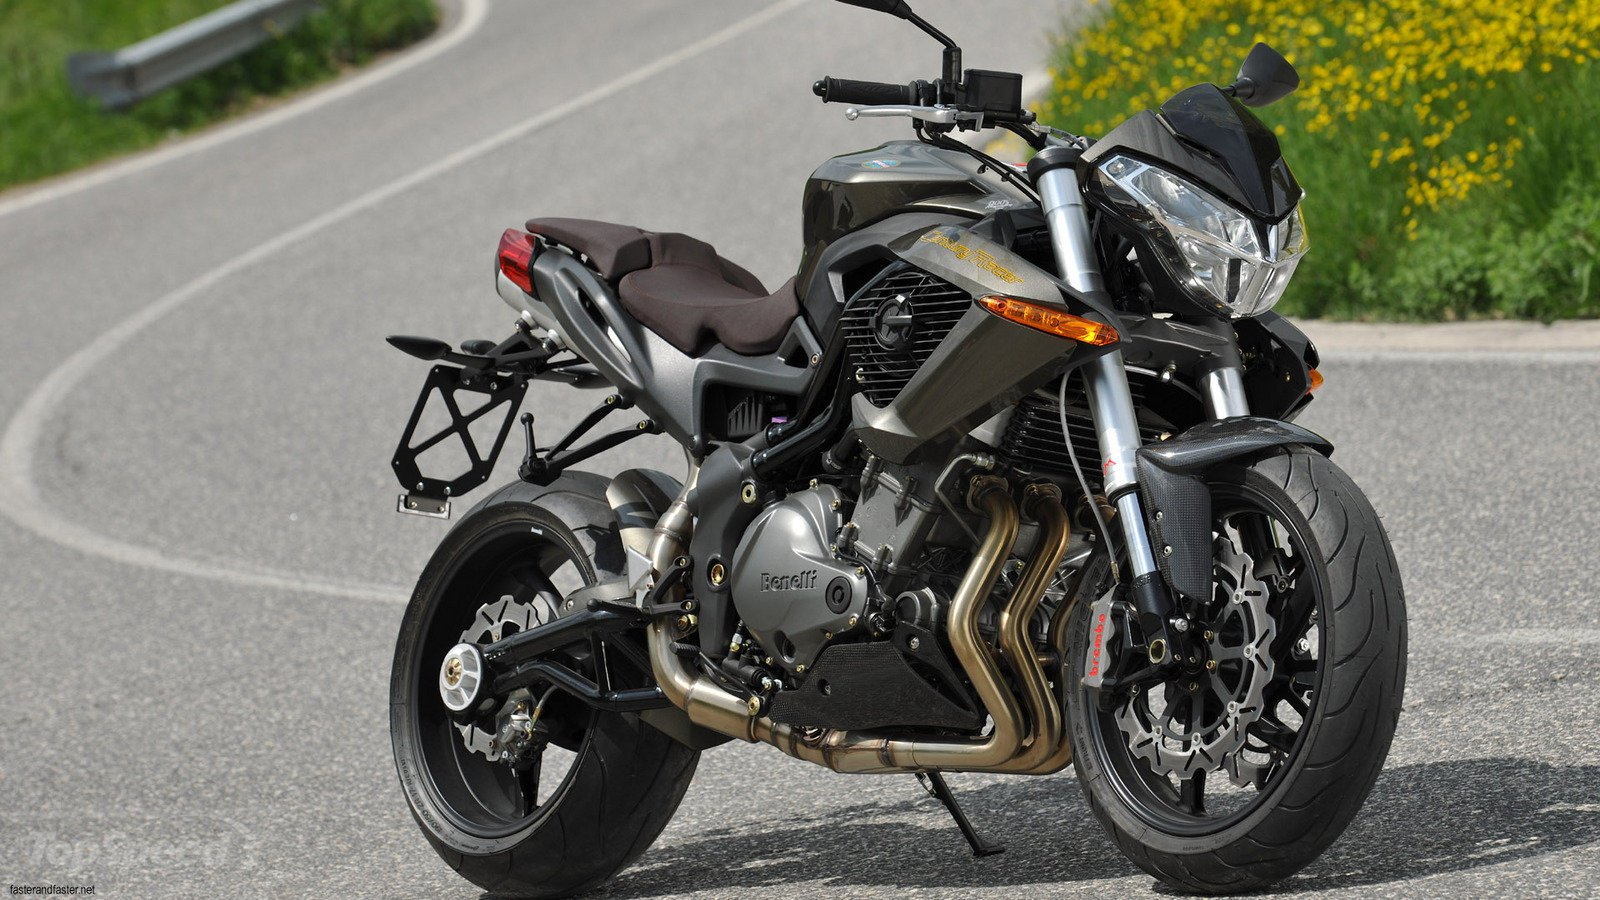 Benelli Cafe Racer 899 #12